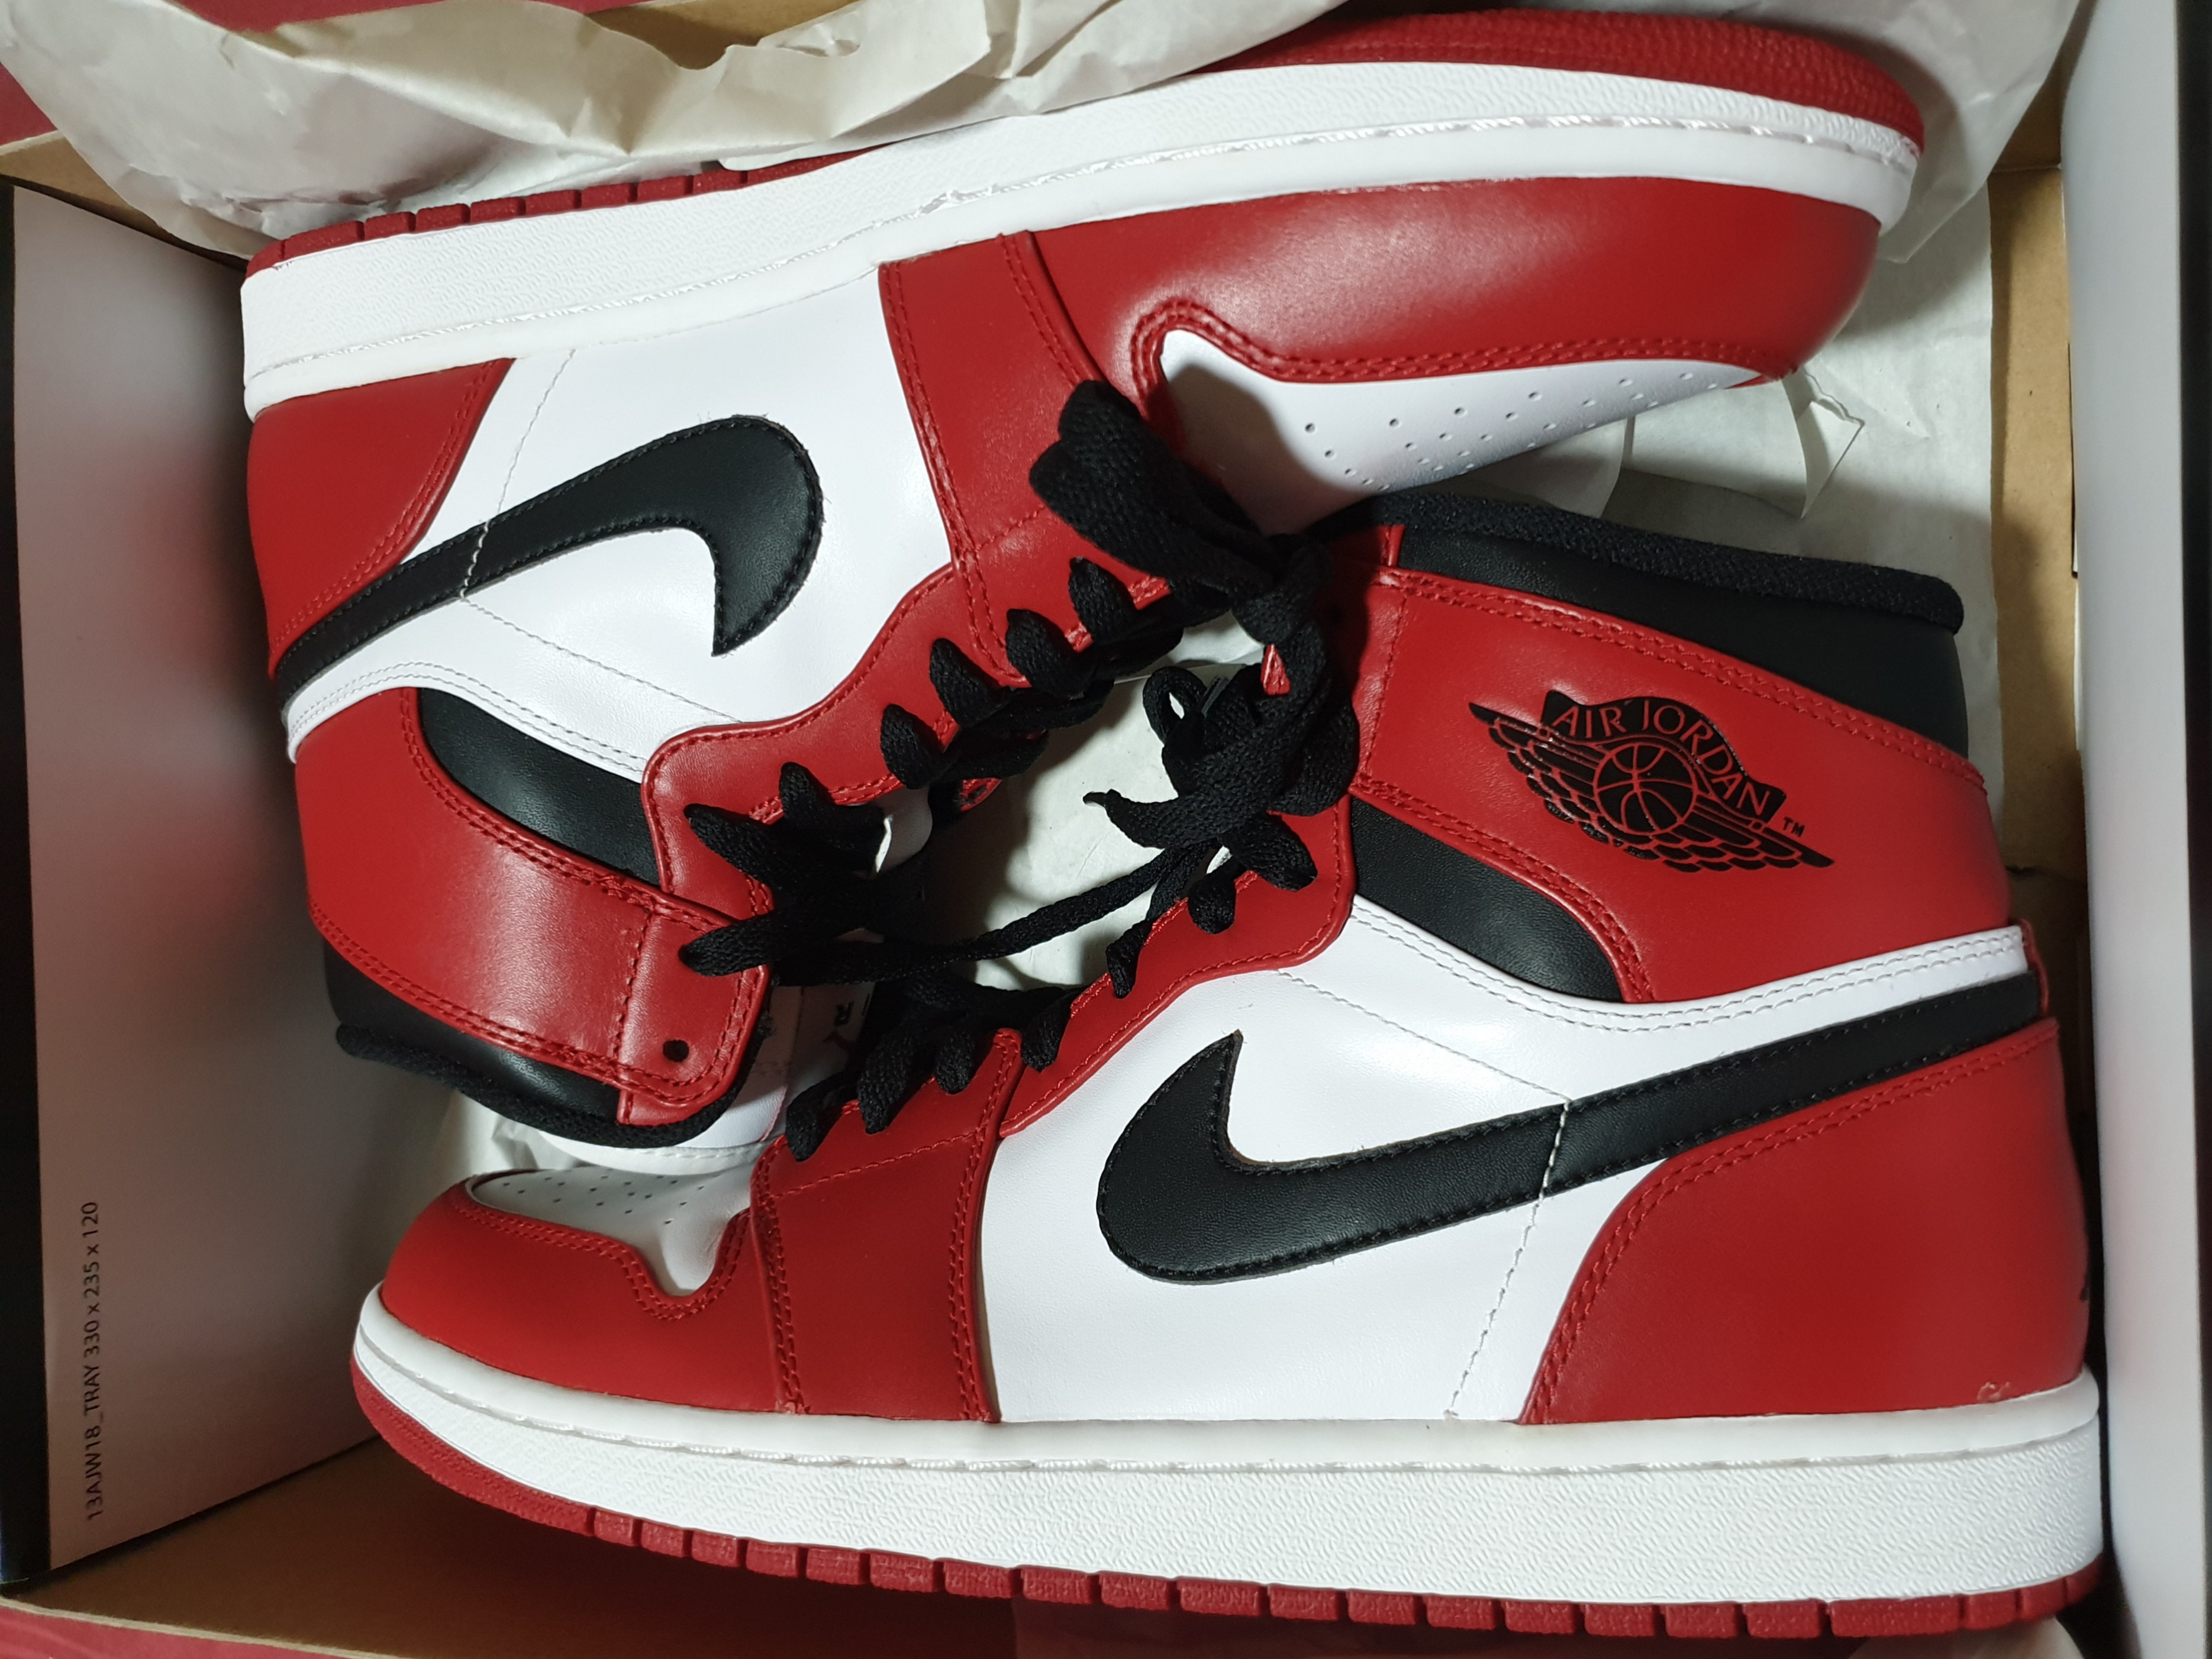 online retailer 4df1b 919a2 Air Jordan 1 AJ1  Chicago  OG GS Retro Jumpman logo 2013, Men s Fashion,  Footwear, Sneakers on Carousell